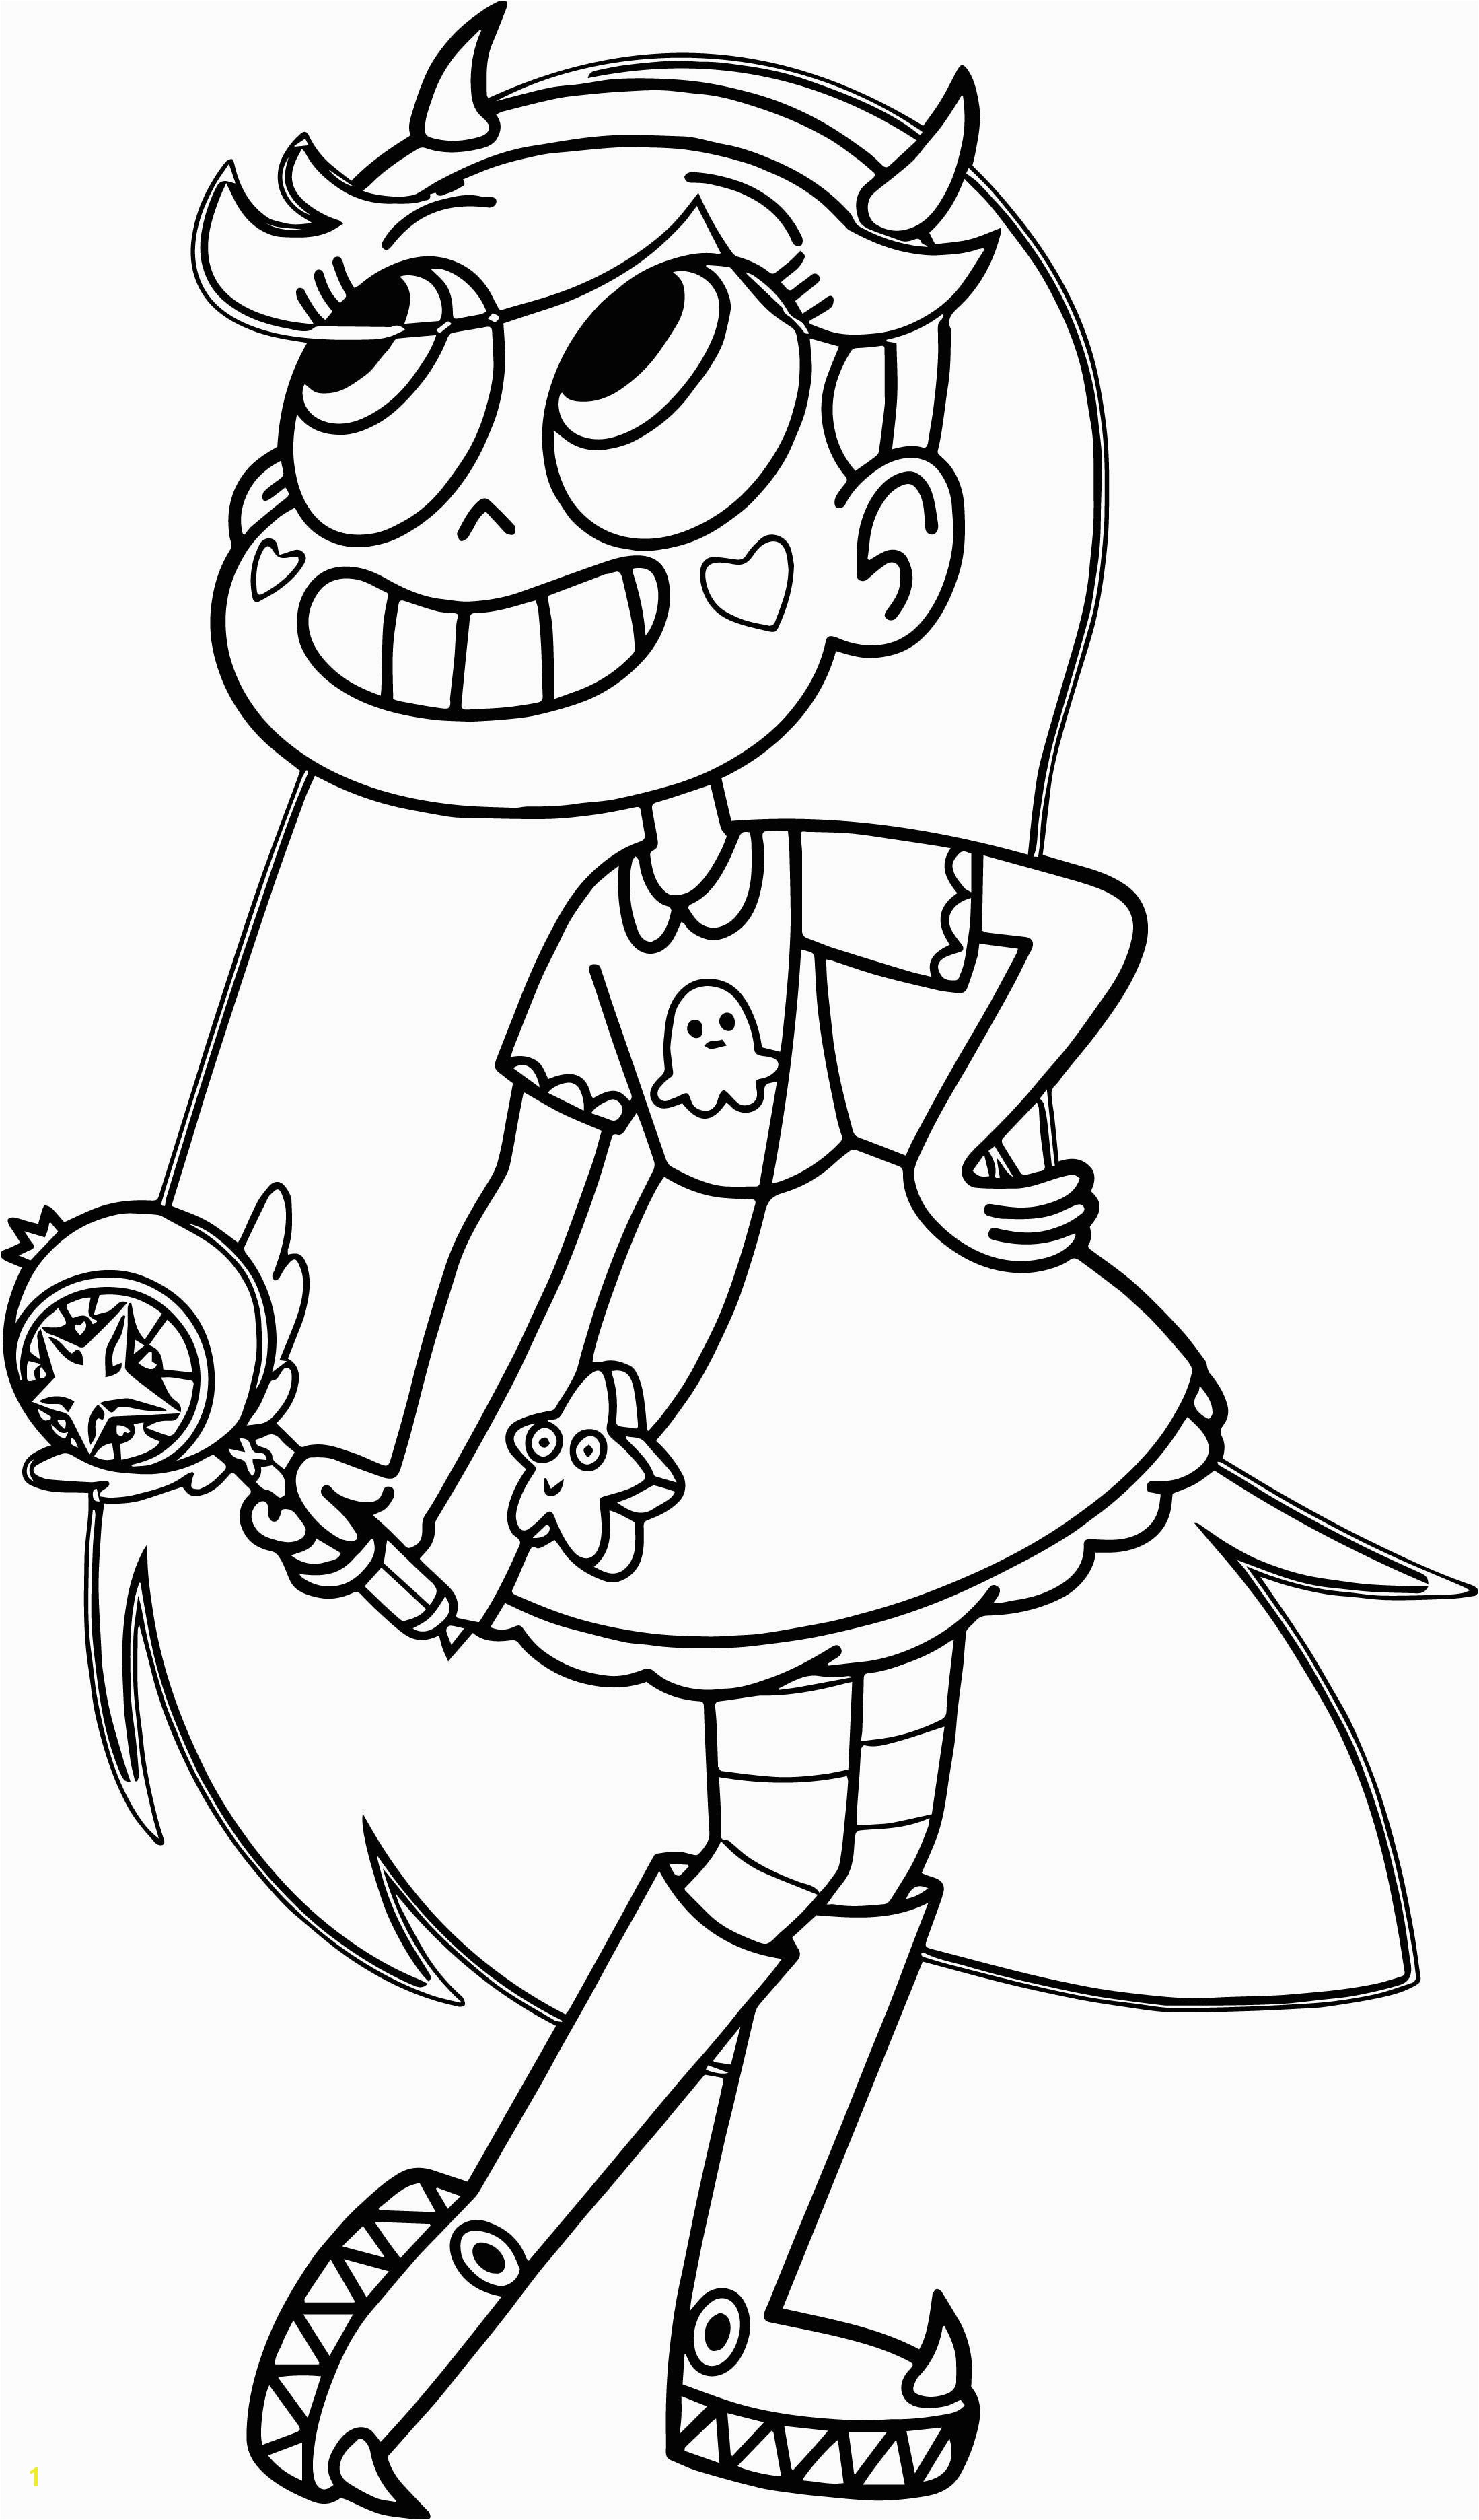 Star Vs the forces Of Evil Coloring Pages Cool Star Vs the forces Evil butterfly Coloring Page